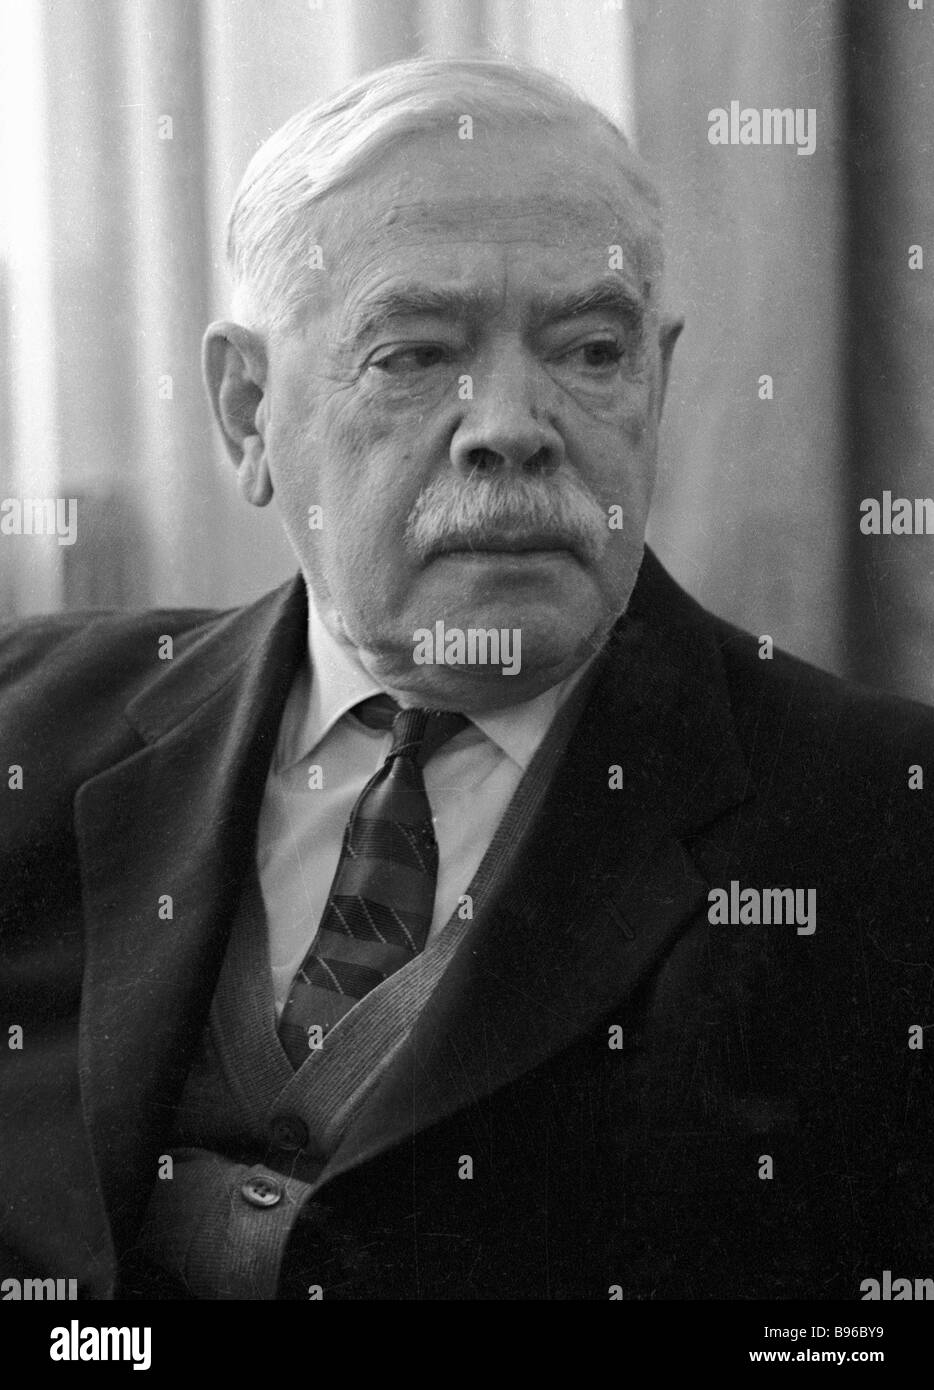 Soviet statesman and party figure Andrei Andreyev - Stock Image